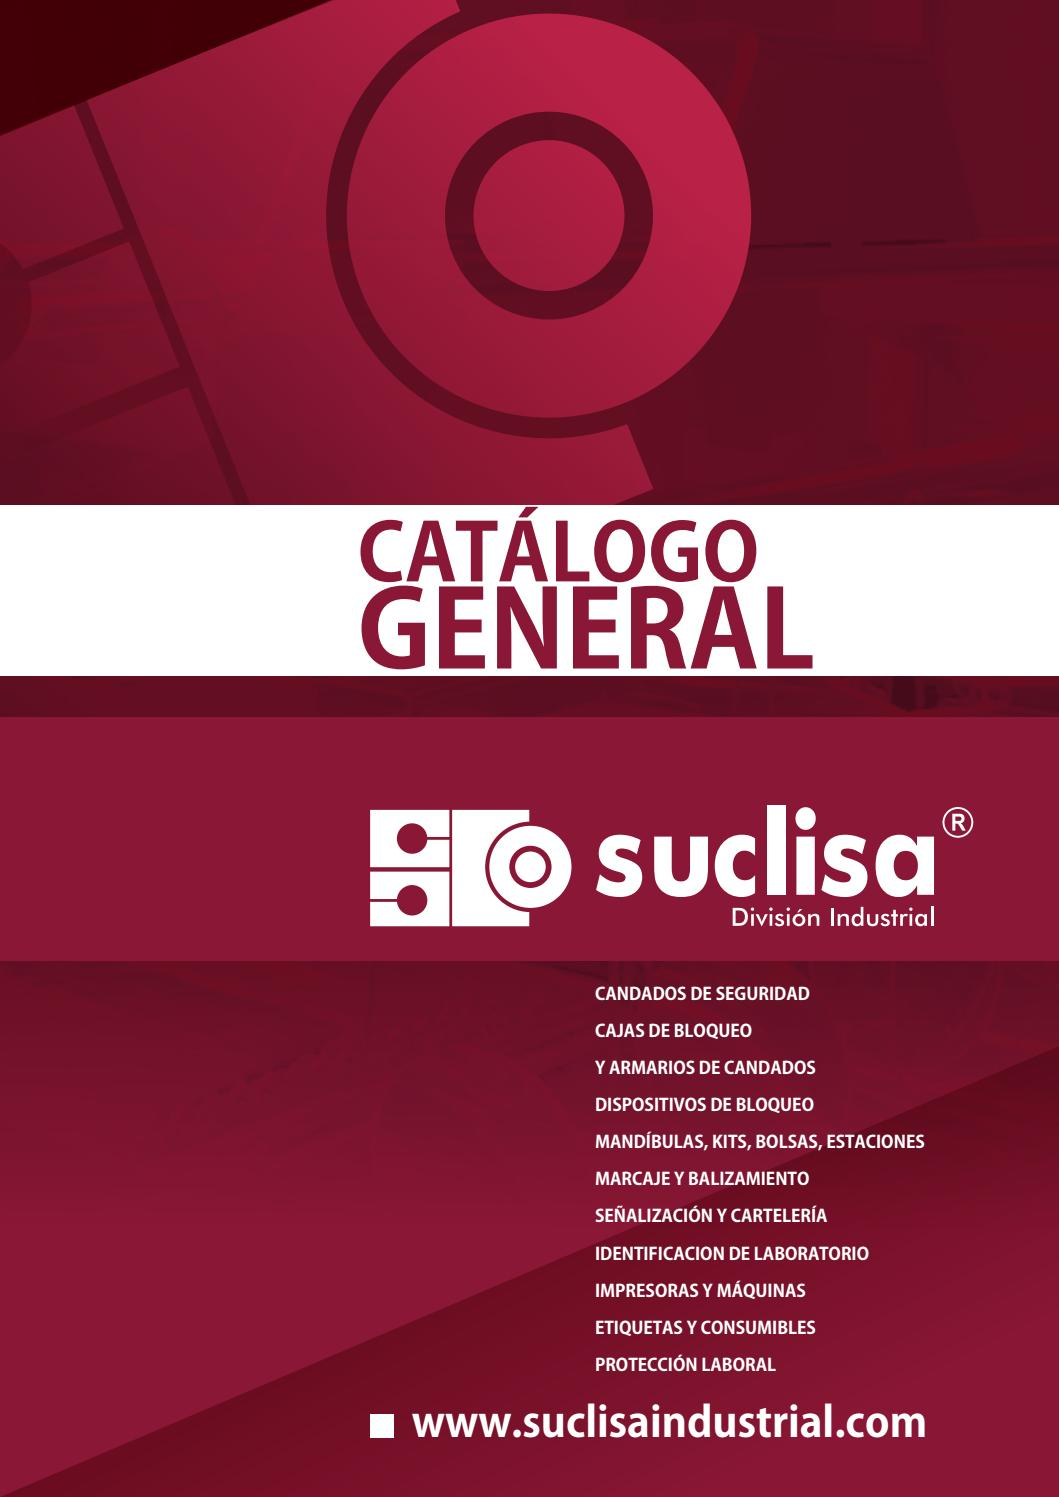 SUCLISA Catalogo General by artefactobilbao - issuu